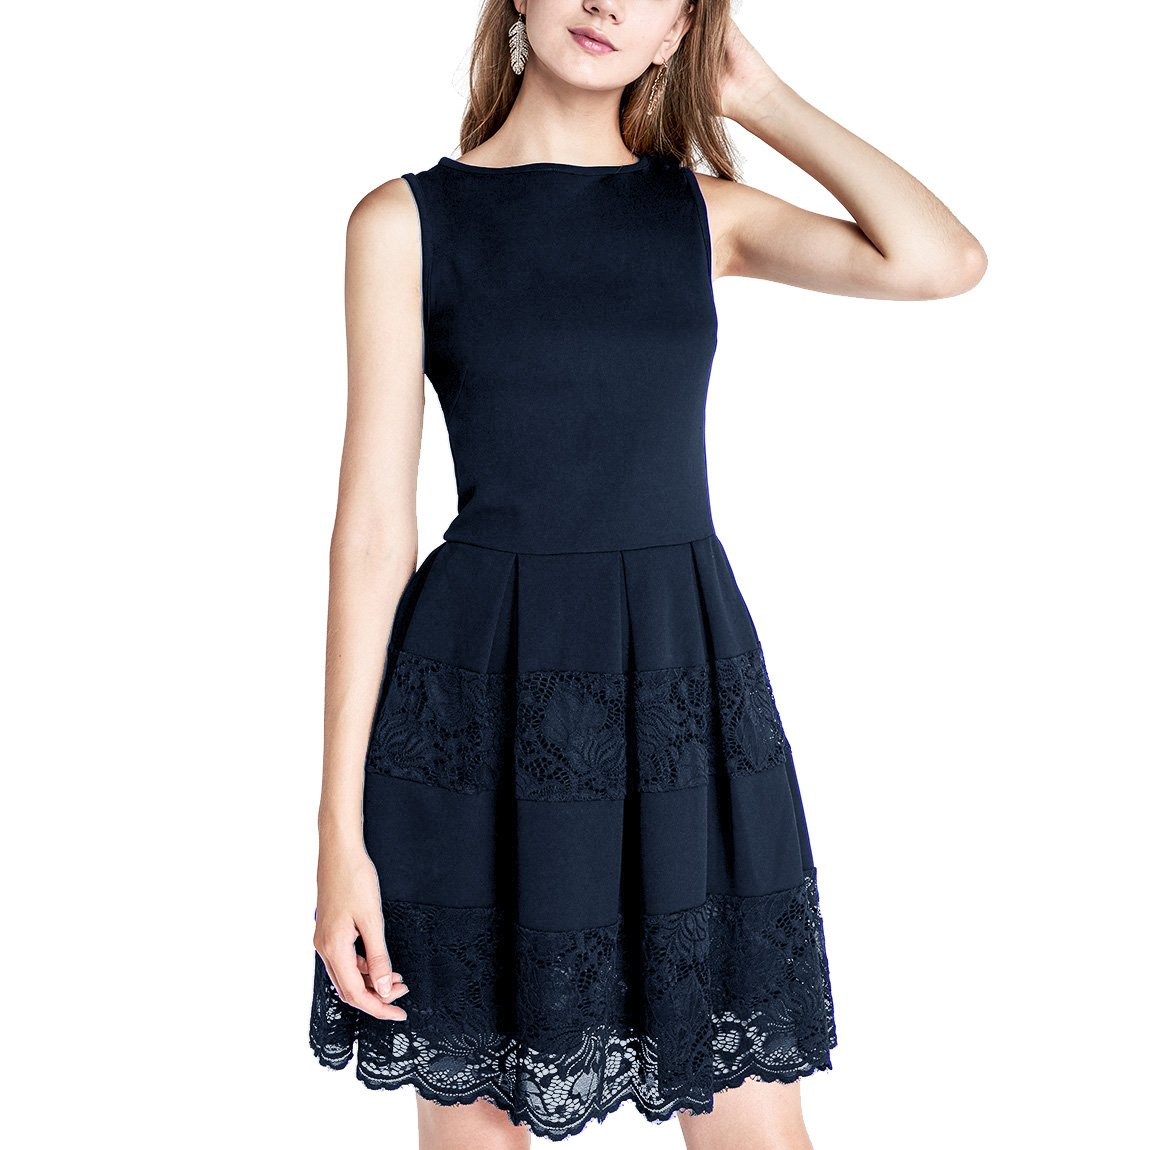 Dressystar Women Sleeveless Cocktail Party Dress Floral Lace Skirt See-Through at Amazon Womens Clothing store: